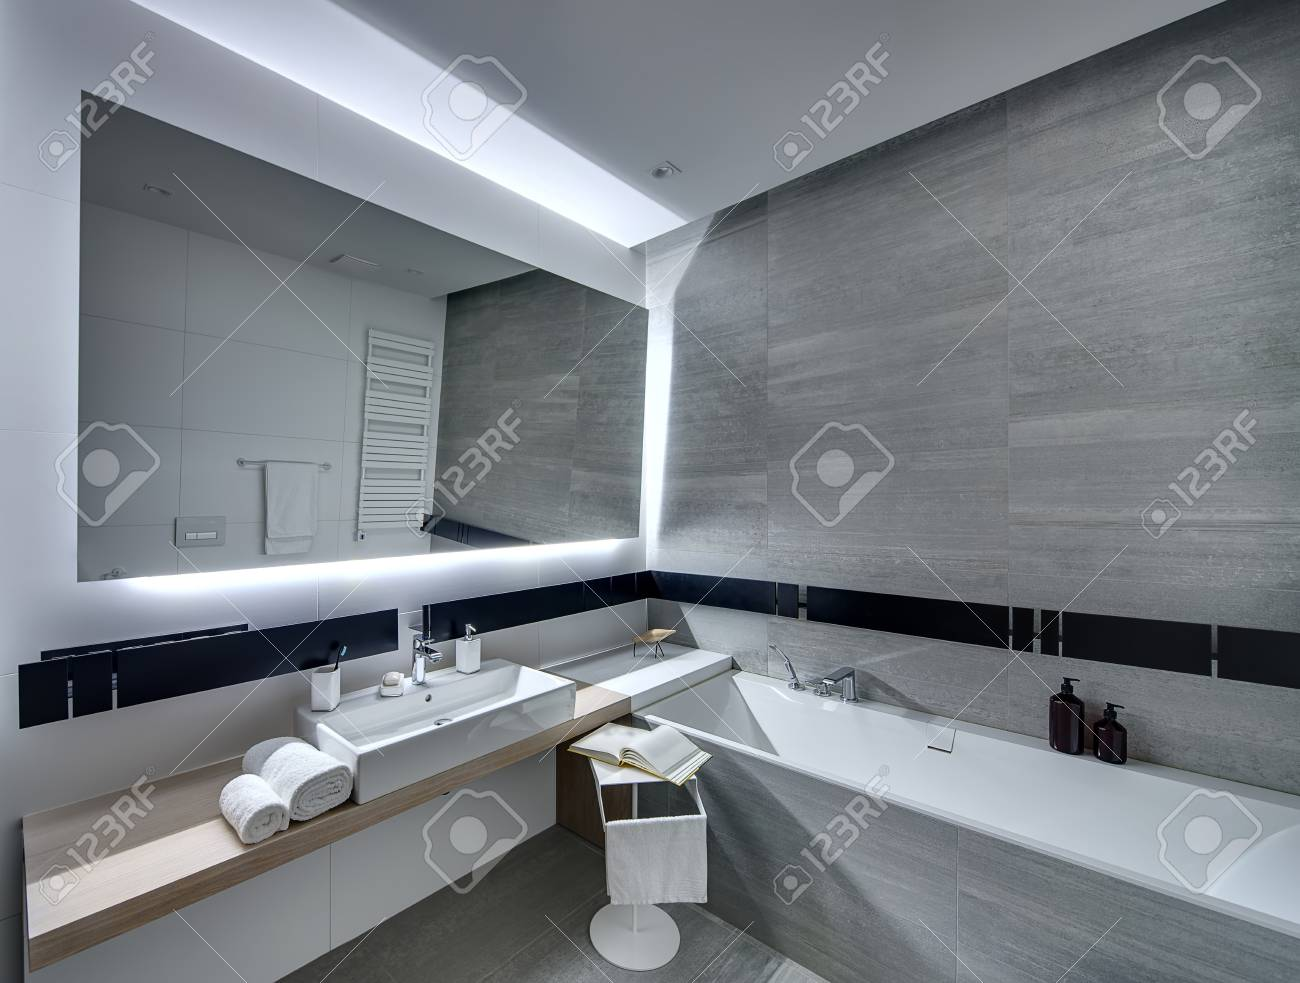 Contemporary Bathroom Tiled With The White And Gray Tiles. There ...